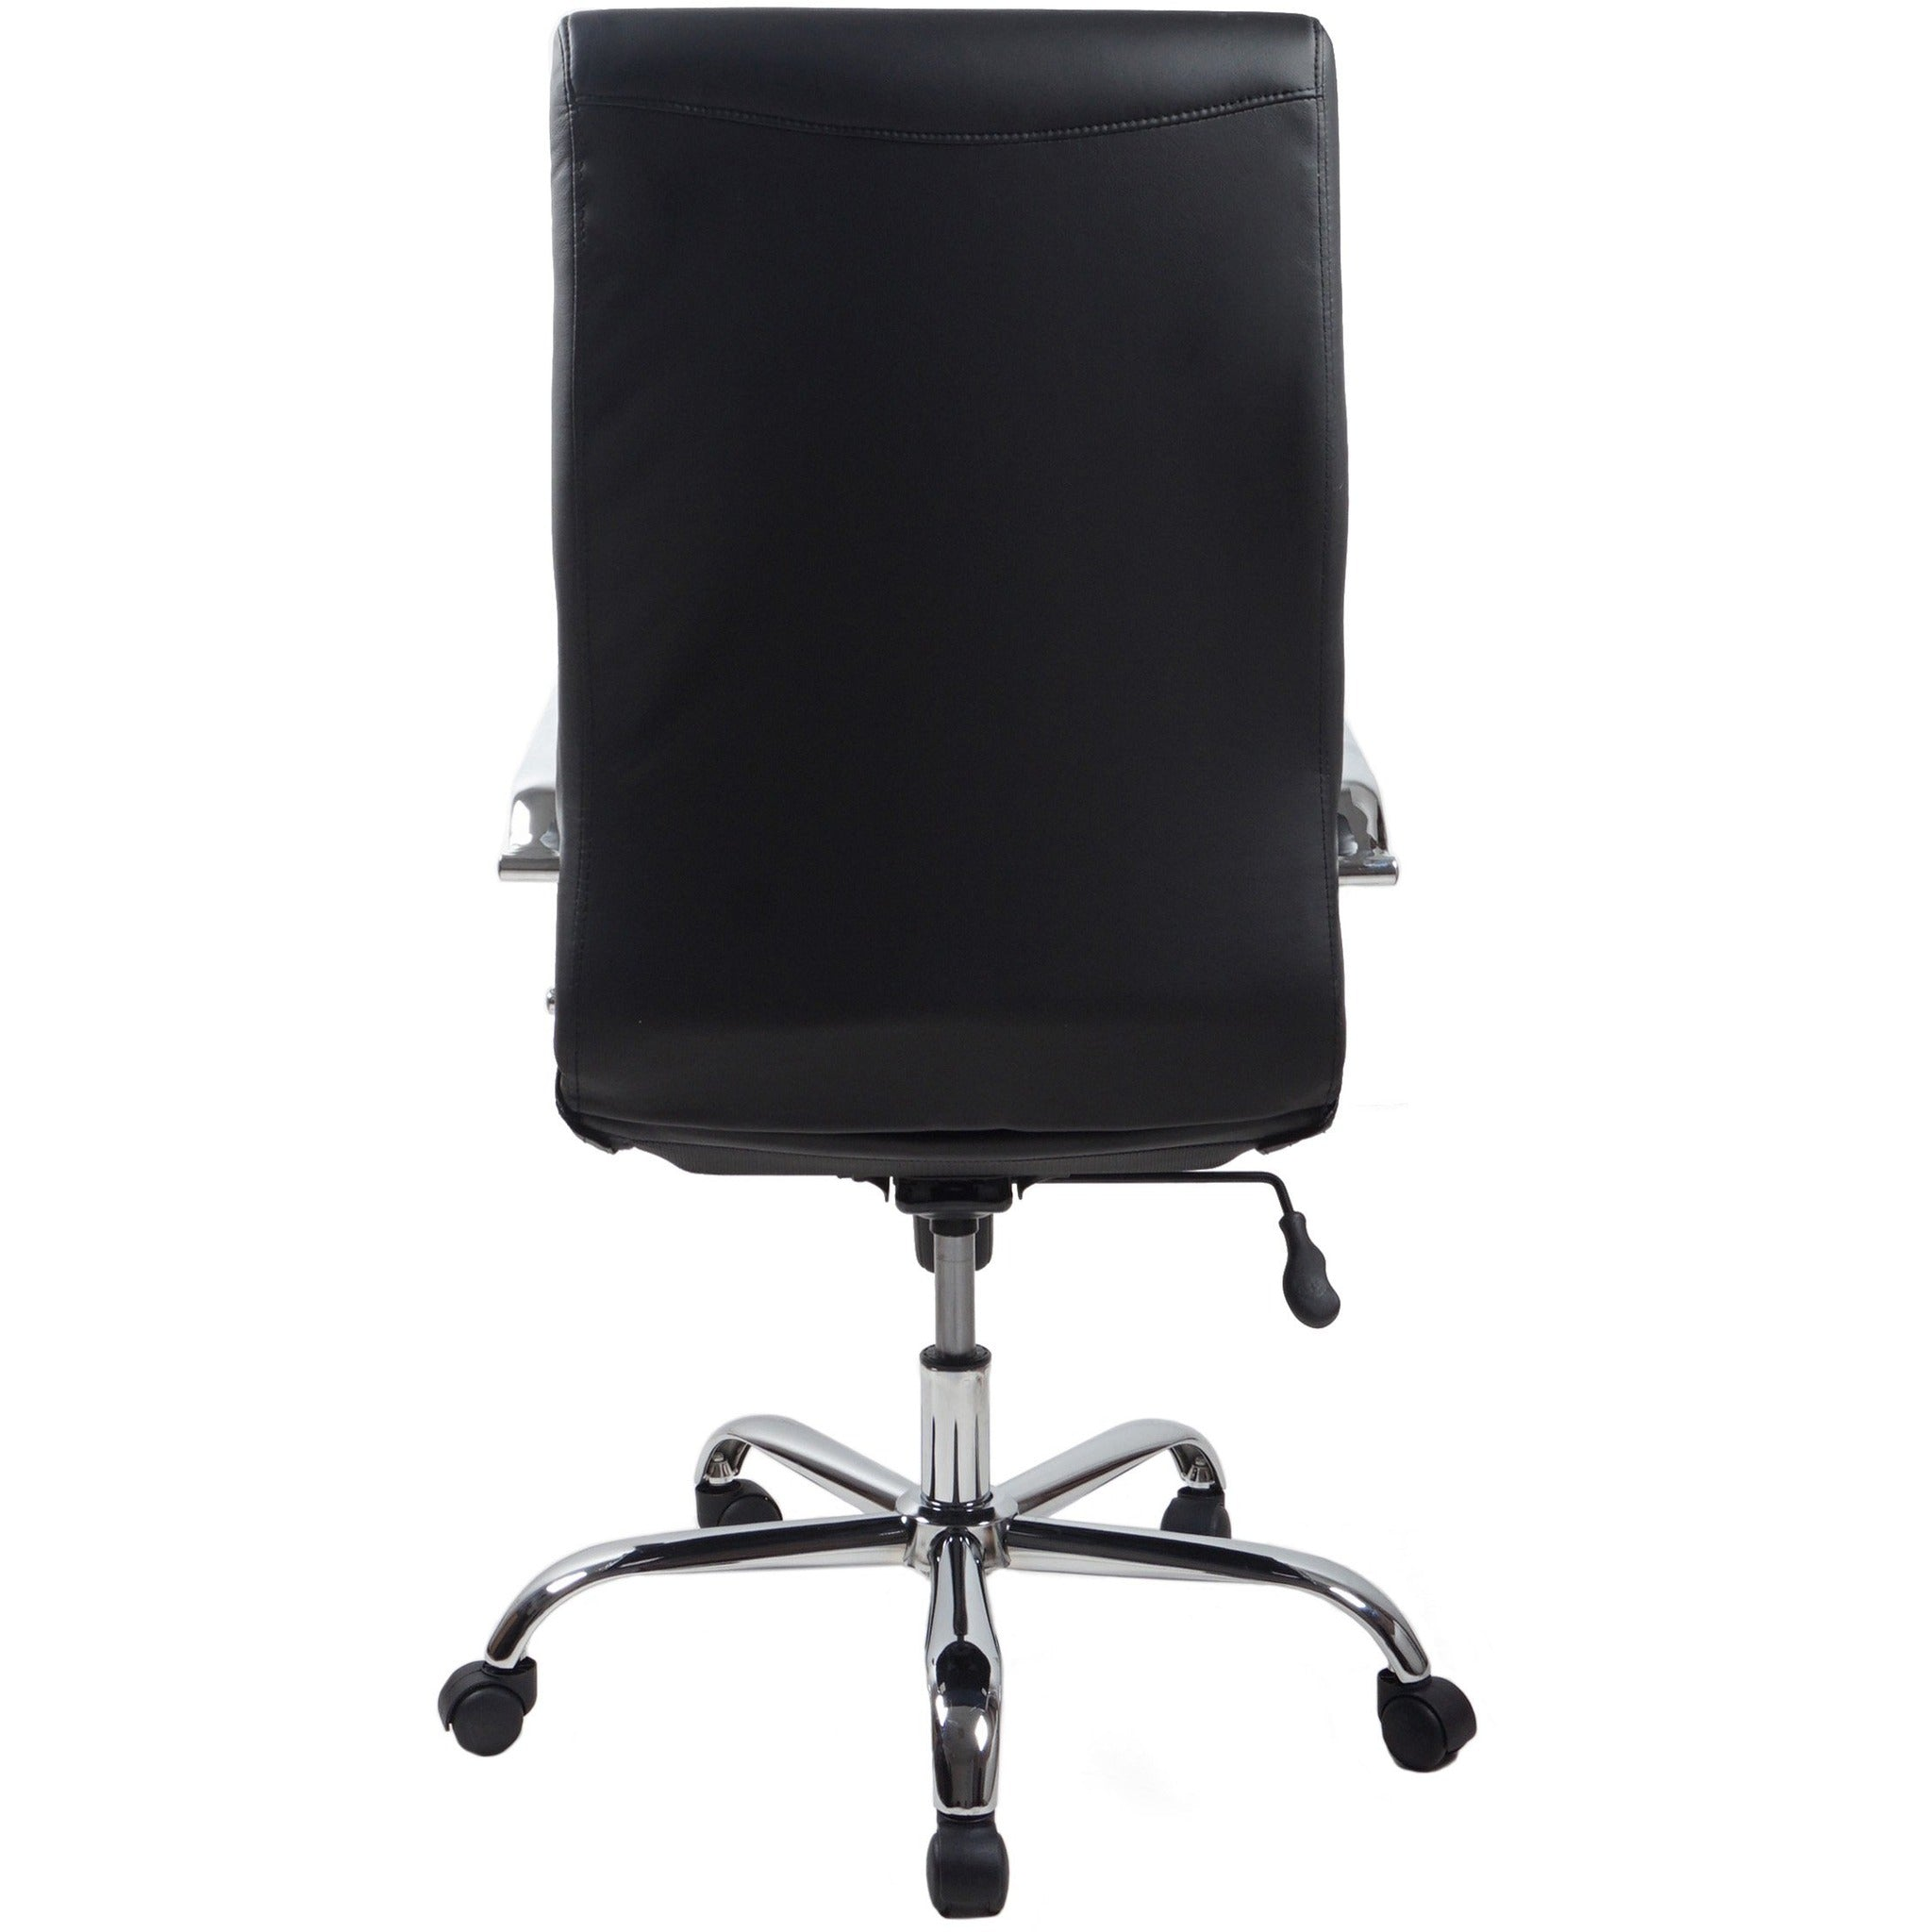 RealBiz II Modern Comfort Series High-Back LeatherPro Chair, Jet Black